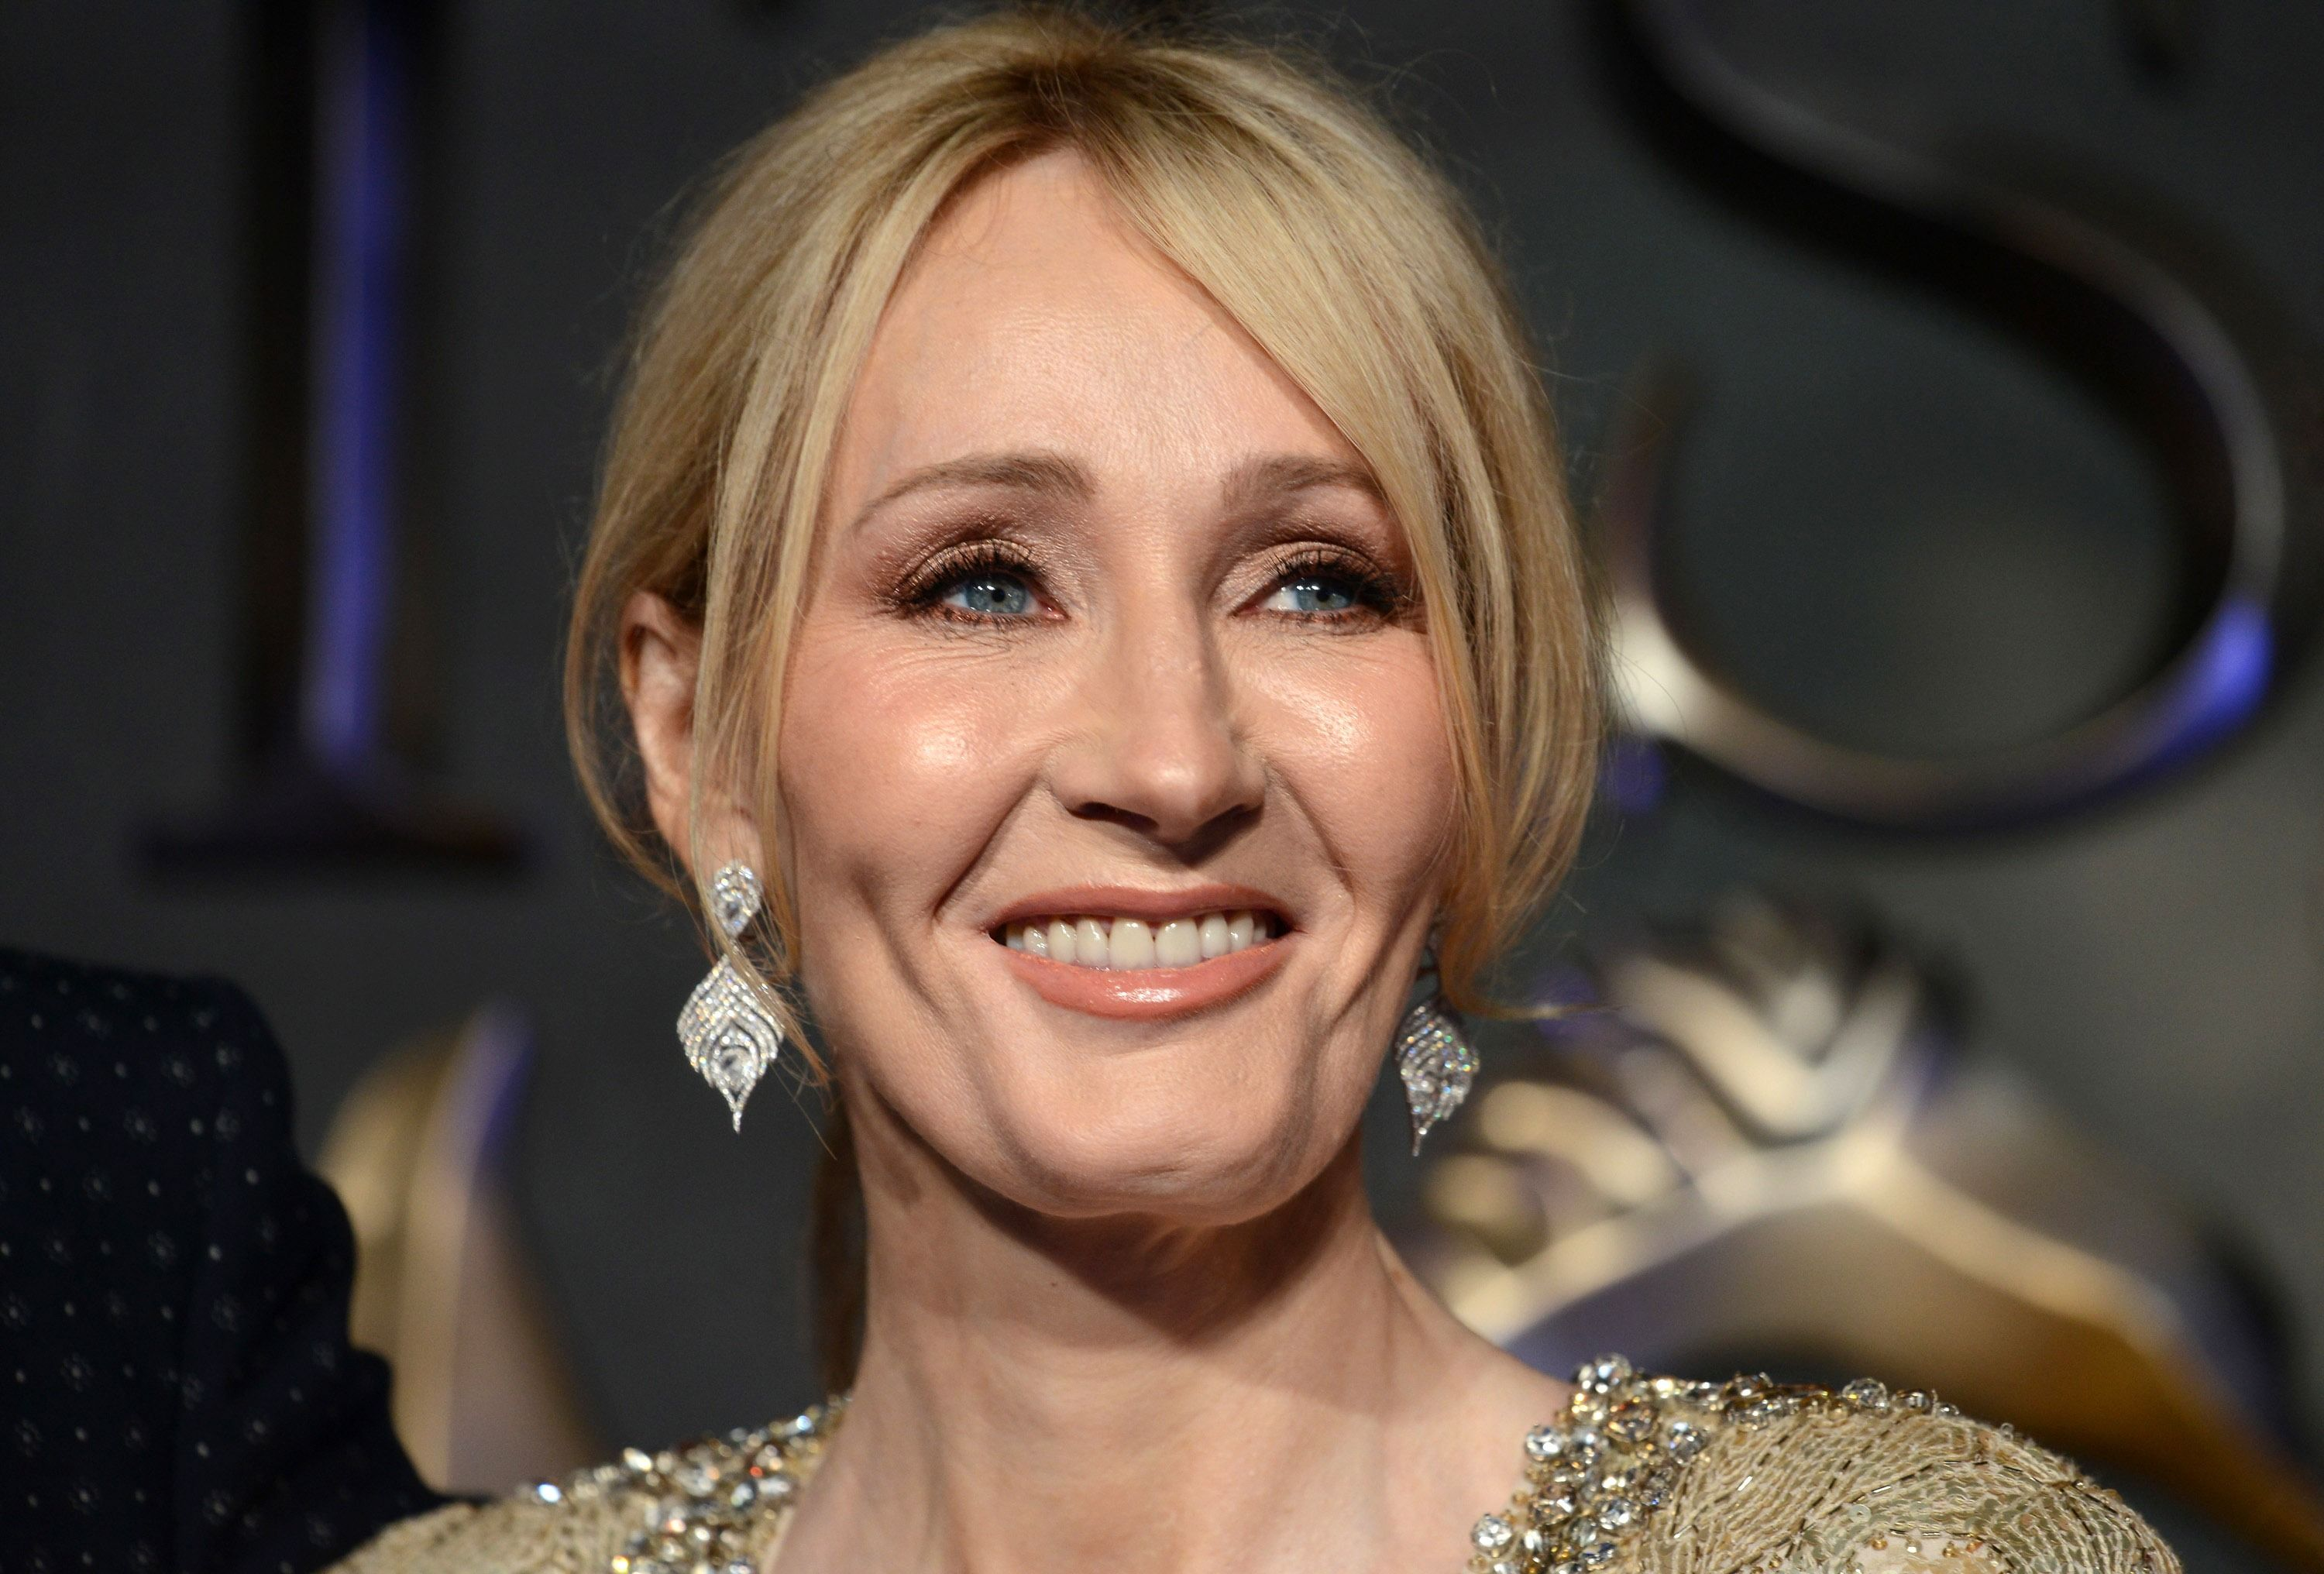 Jk Rowling Blasts Trump With Bible On Family Separation The Forward